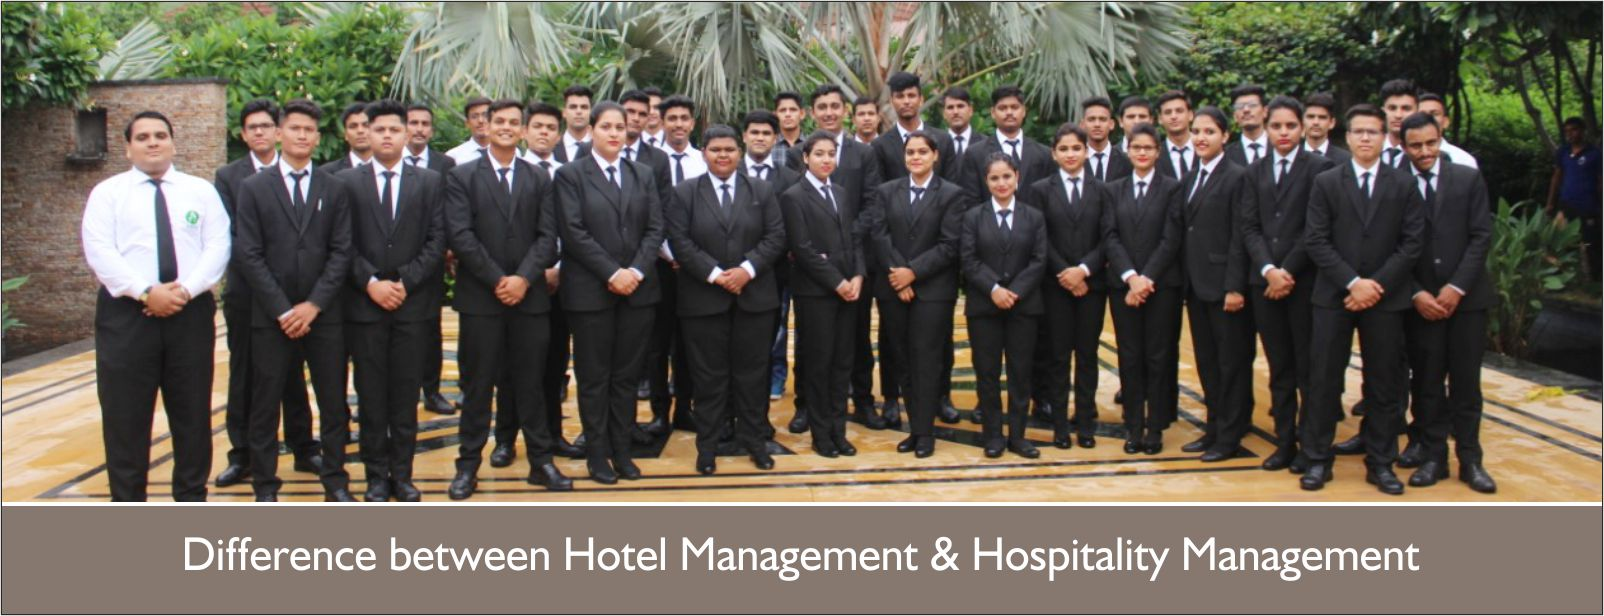 UNIQUE DIFFERENCES BETWEEN HOTEL MANAGEMENT AND HOSPITALITY MANAGEMENT